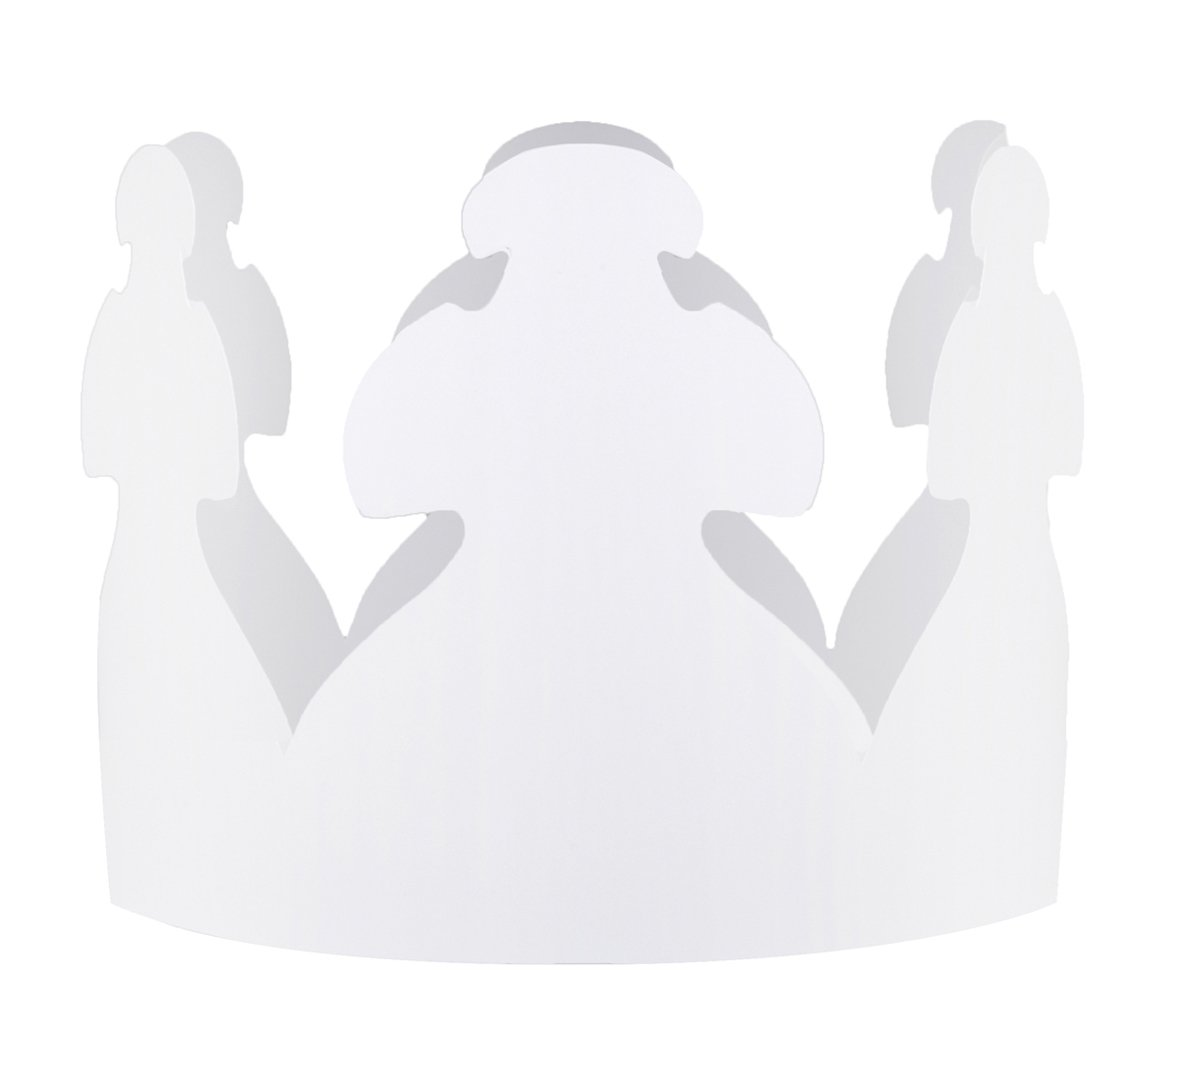 Hygloss Products 66523 Bulk White Paper Party Crowns - Pre-Cut-Ready to Wear-Fun to Decorate-Made in The USA-144 Pack, 144 Pieces by Hygloss